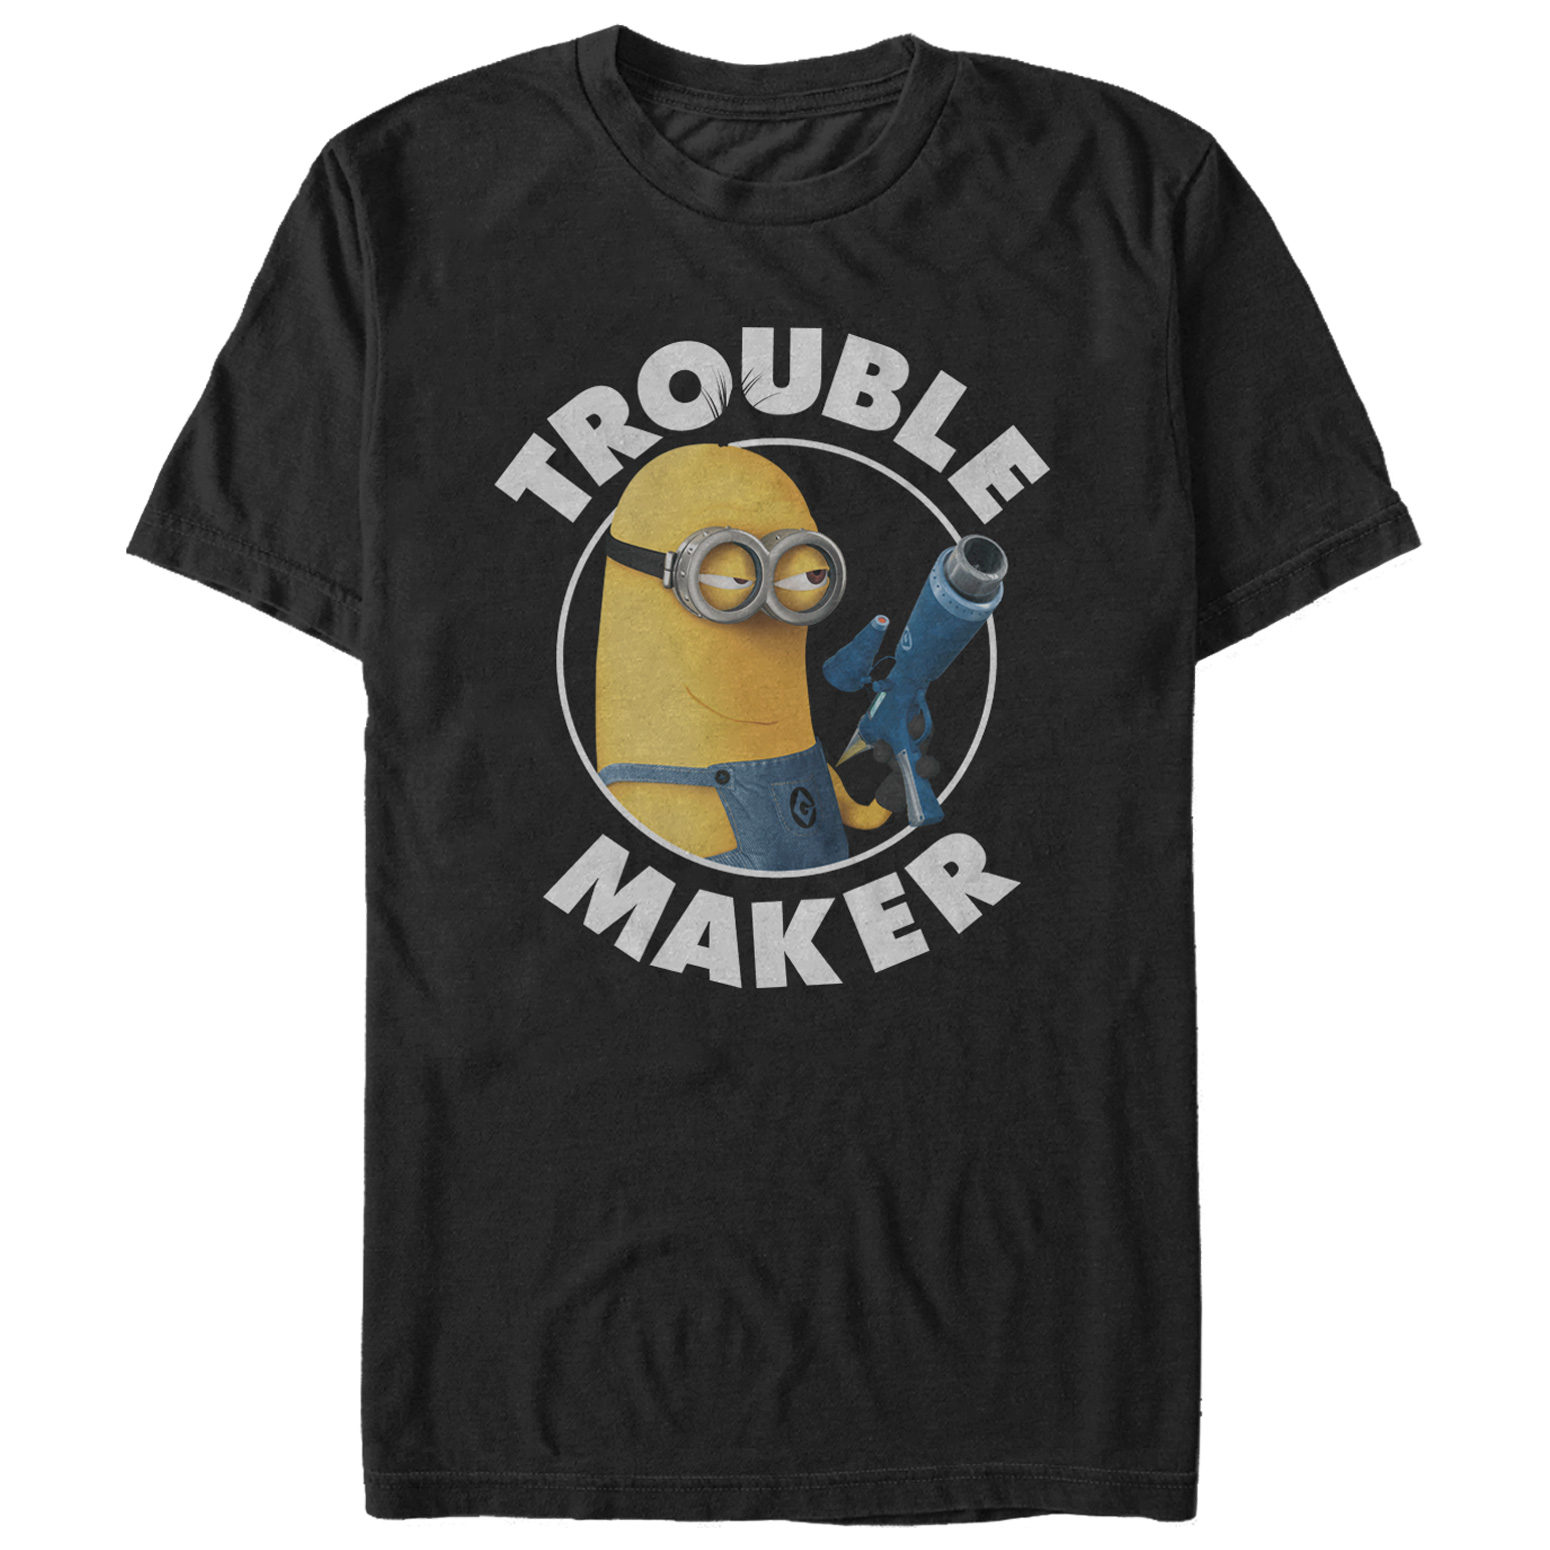 Despicable Me Minions Boys Here/'s Trouble t shirt top long sleeve New with tags